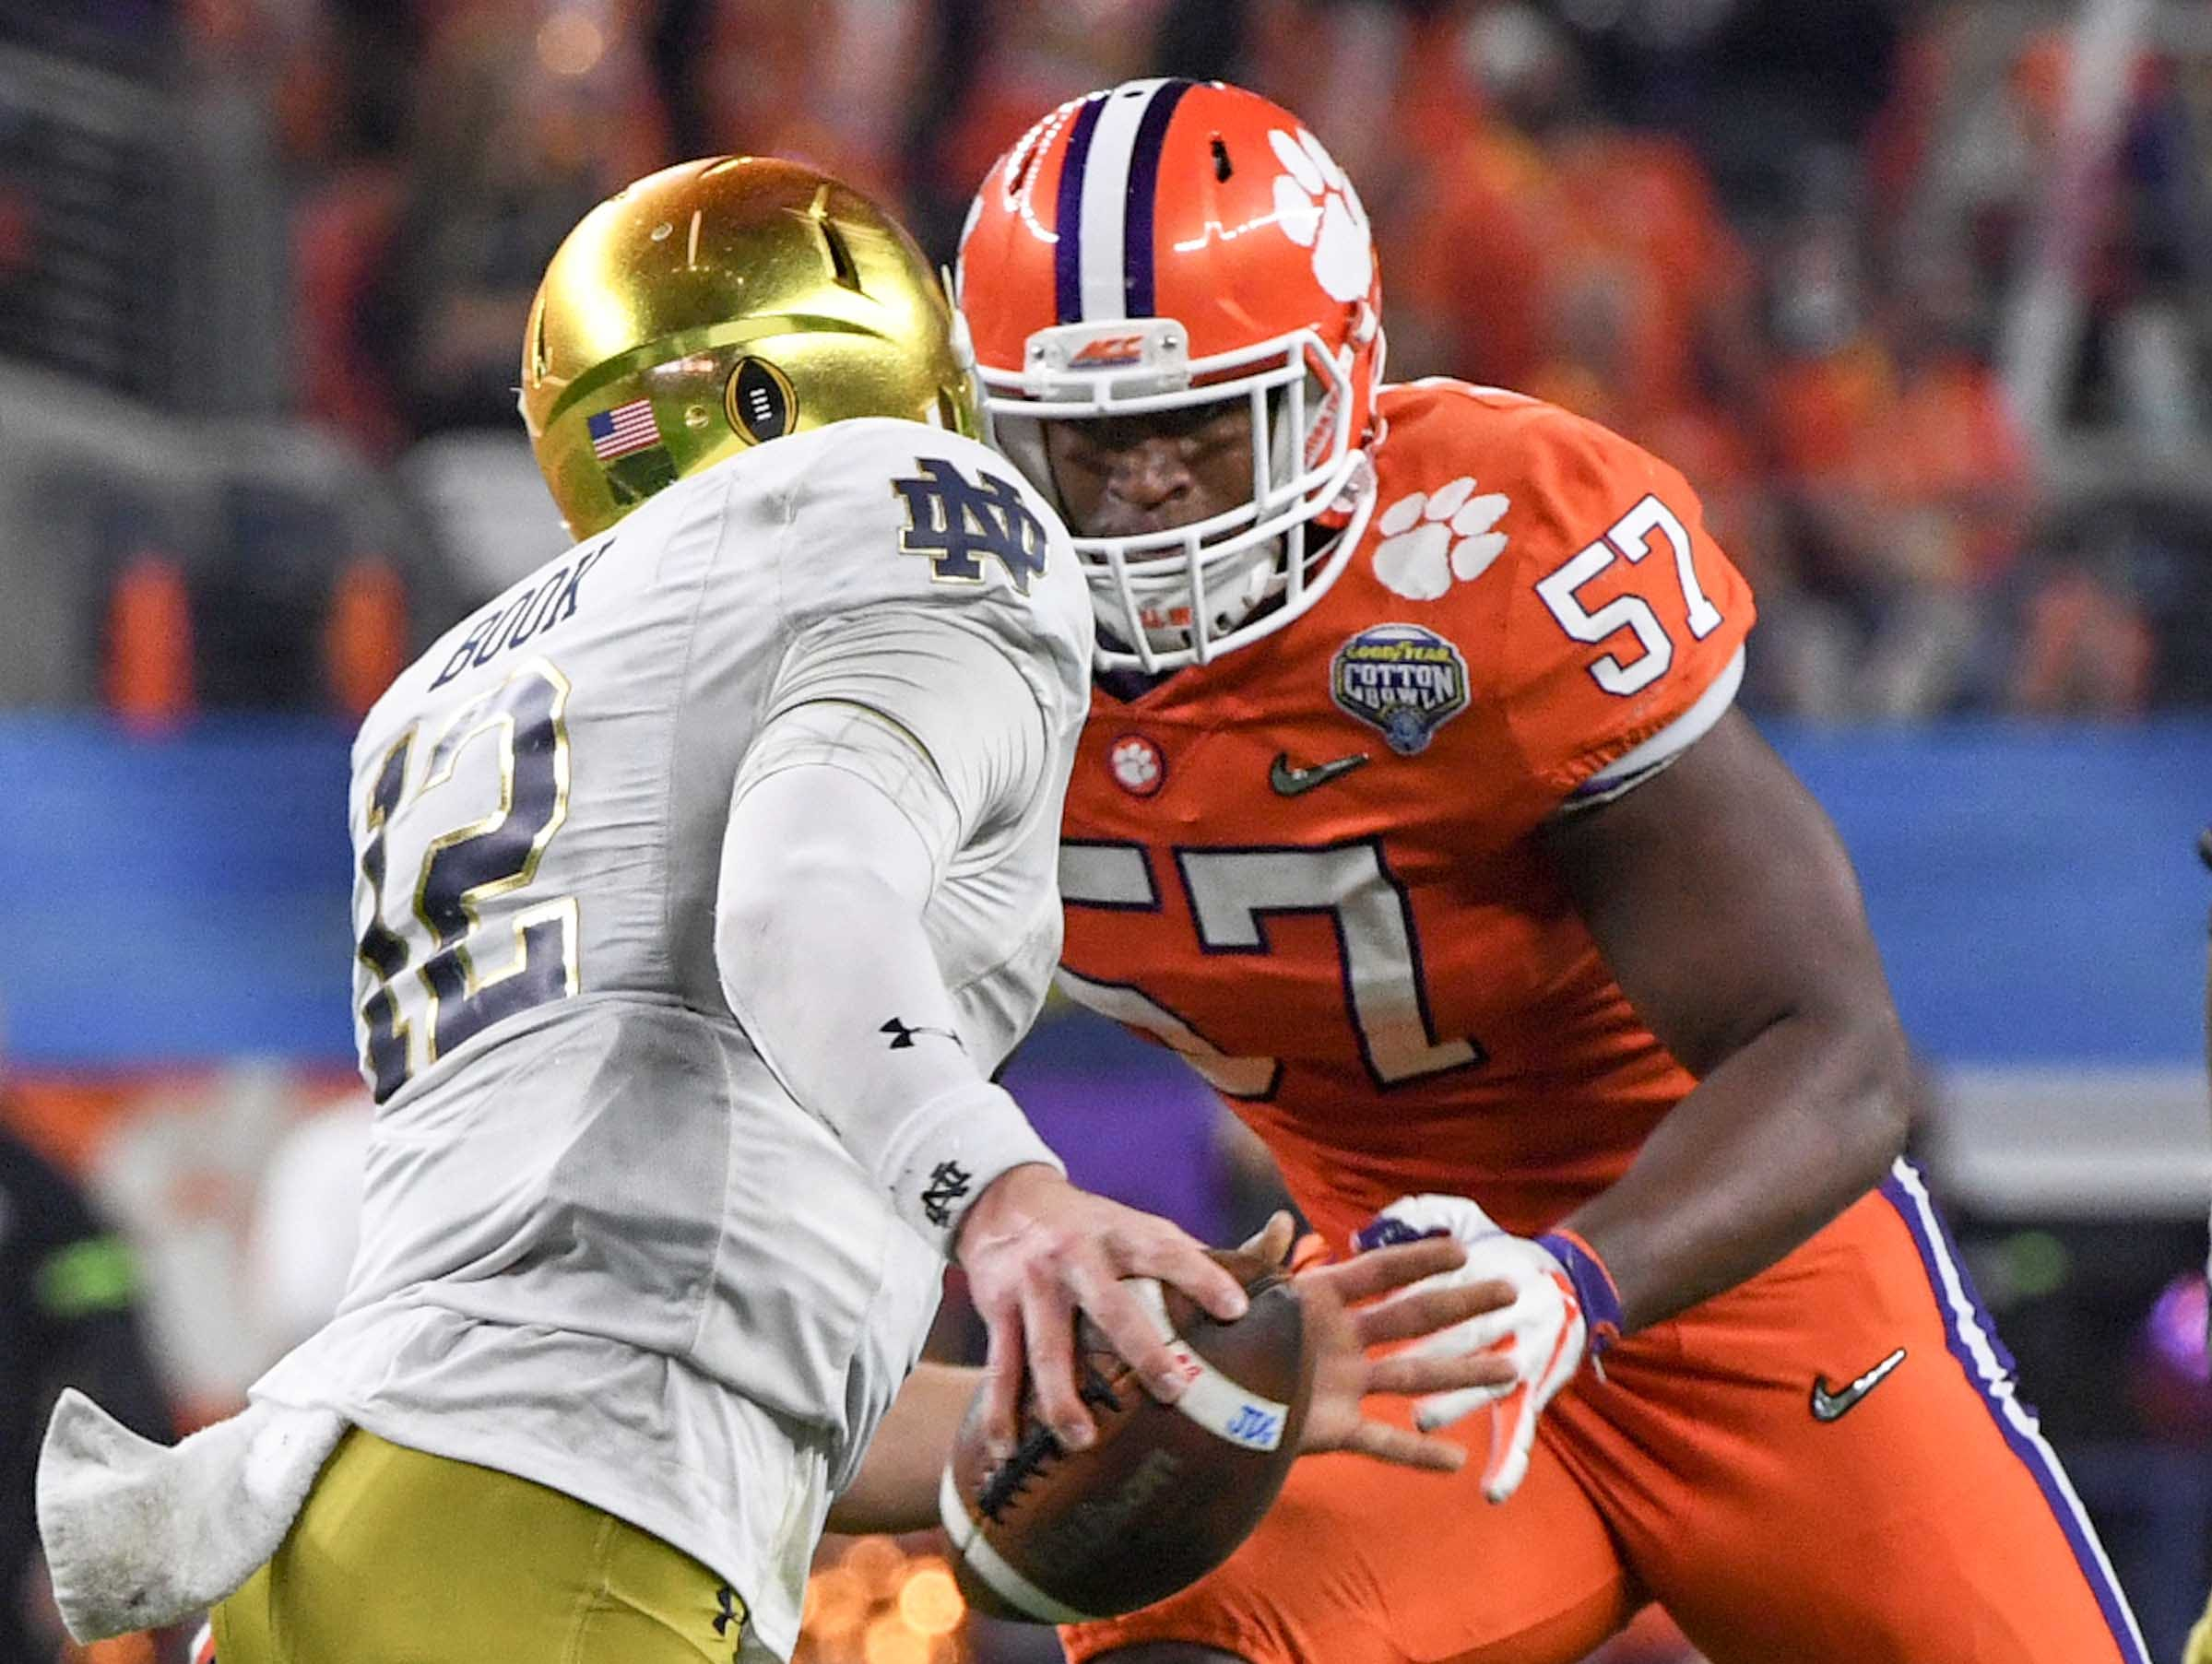 Notre Dame quarterback Ian Book (12) runs from Clemson linebacker Tre Lamar (57) during the fourth quarter of the College Football Playoff Semifinal at the Goodyear Cotton Bowl Classic at AT&T Stadium in Arlington, Texas Saturday, December 29, 2018.